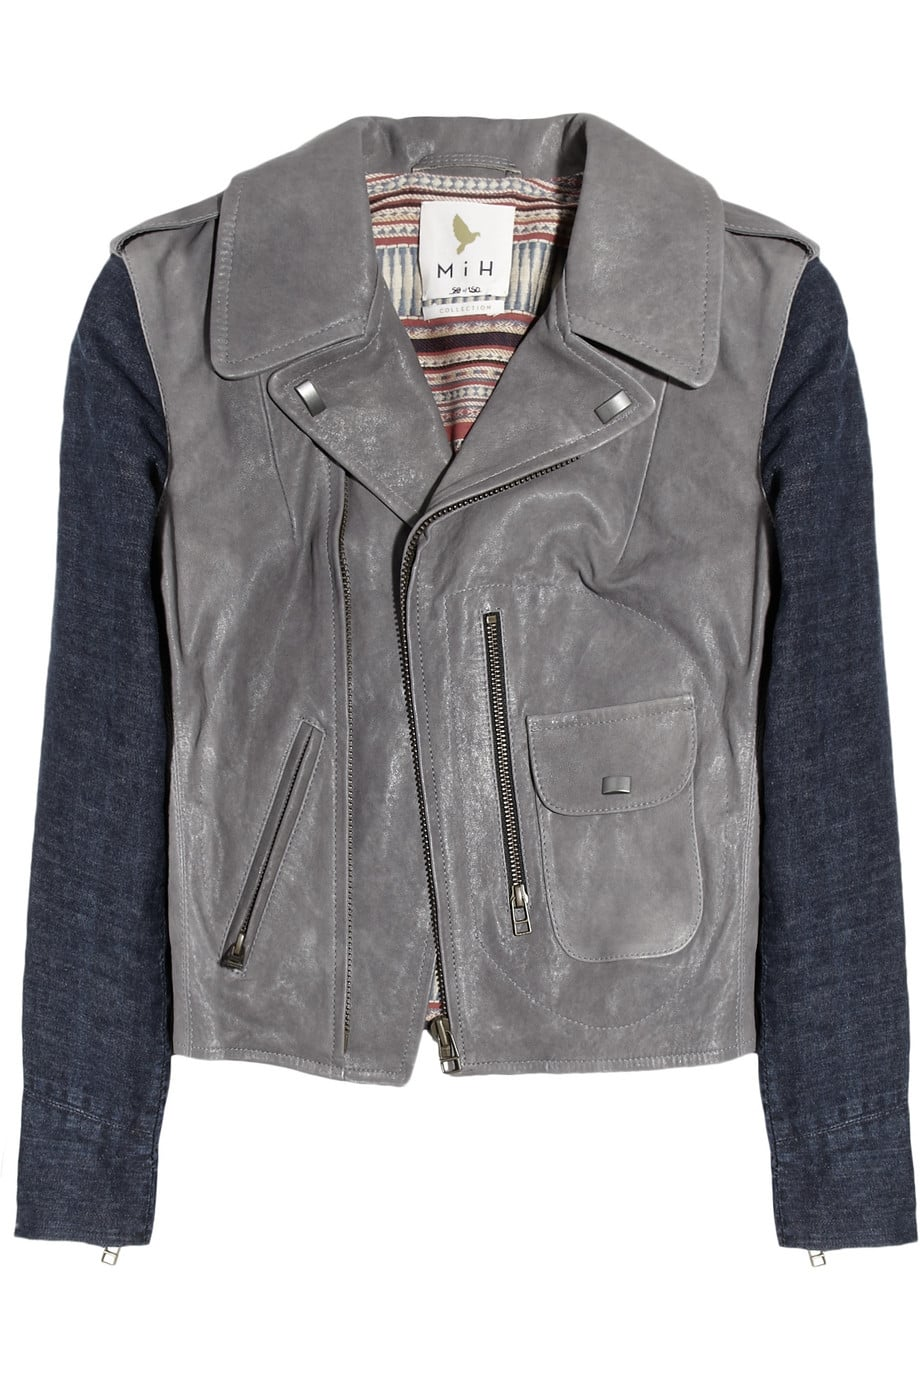 MiH Jeans's Denim-Sleeved Leather Biker Jacket ($925) is the perfect blend of laid-back denim jacket and badass biker cool. The gray-toned leather is a nice alternative to basic black, and it would look great over an LBD for holiday parties. — Britt Stephens, assistant editor